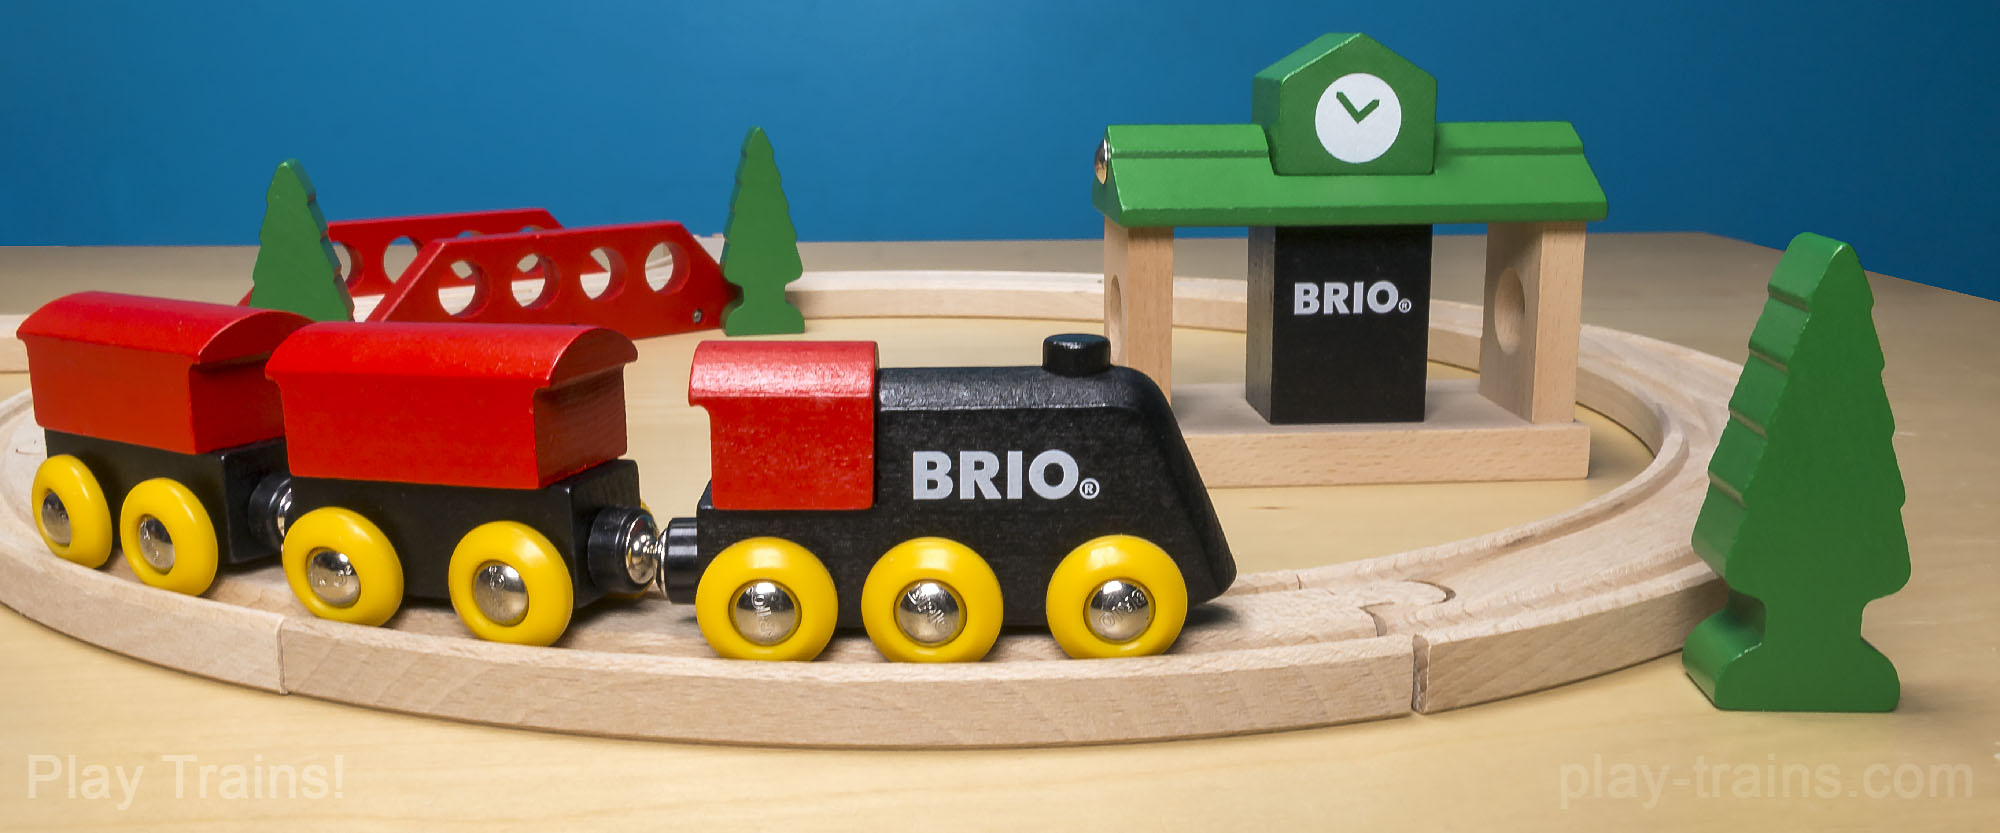 BRIO Classic Figure 8 Set -- The Play Trains! Guide to Wooden Train Sets: expert advice on the best wooden train set to buy for your little engineer.